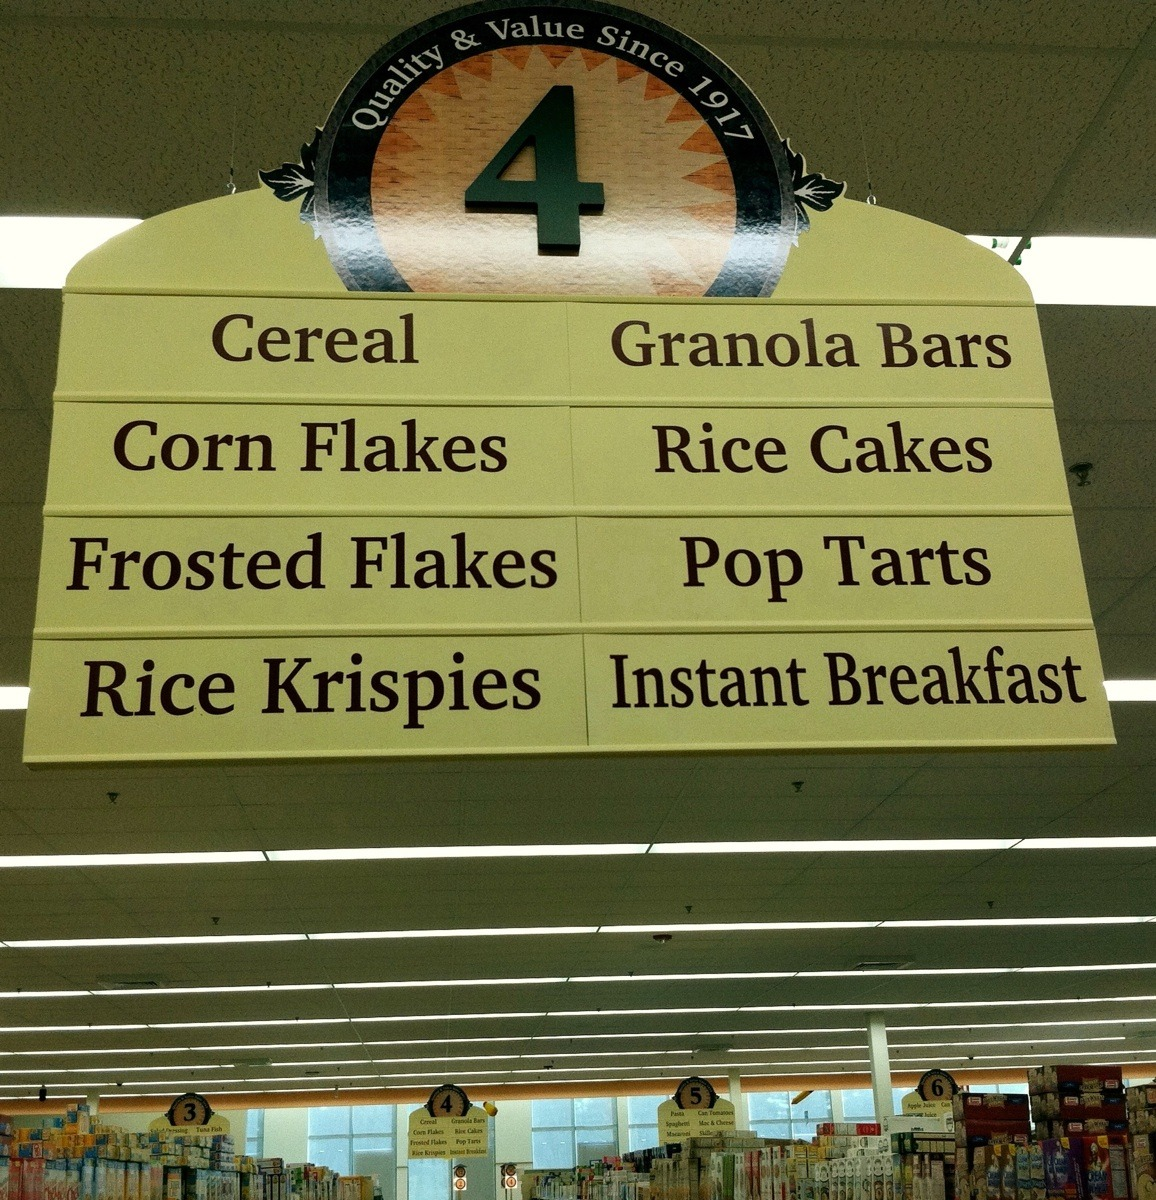 Oh! Cereal AND Corn Flakes, Frosted Flakes, and Rice Krispies. I see.